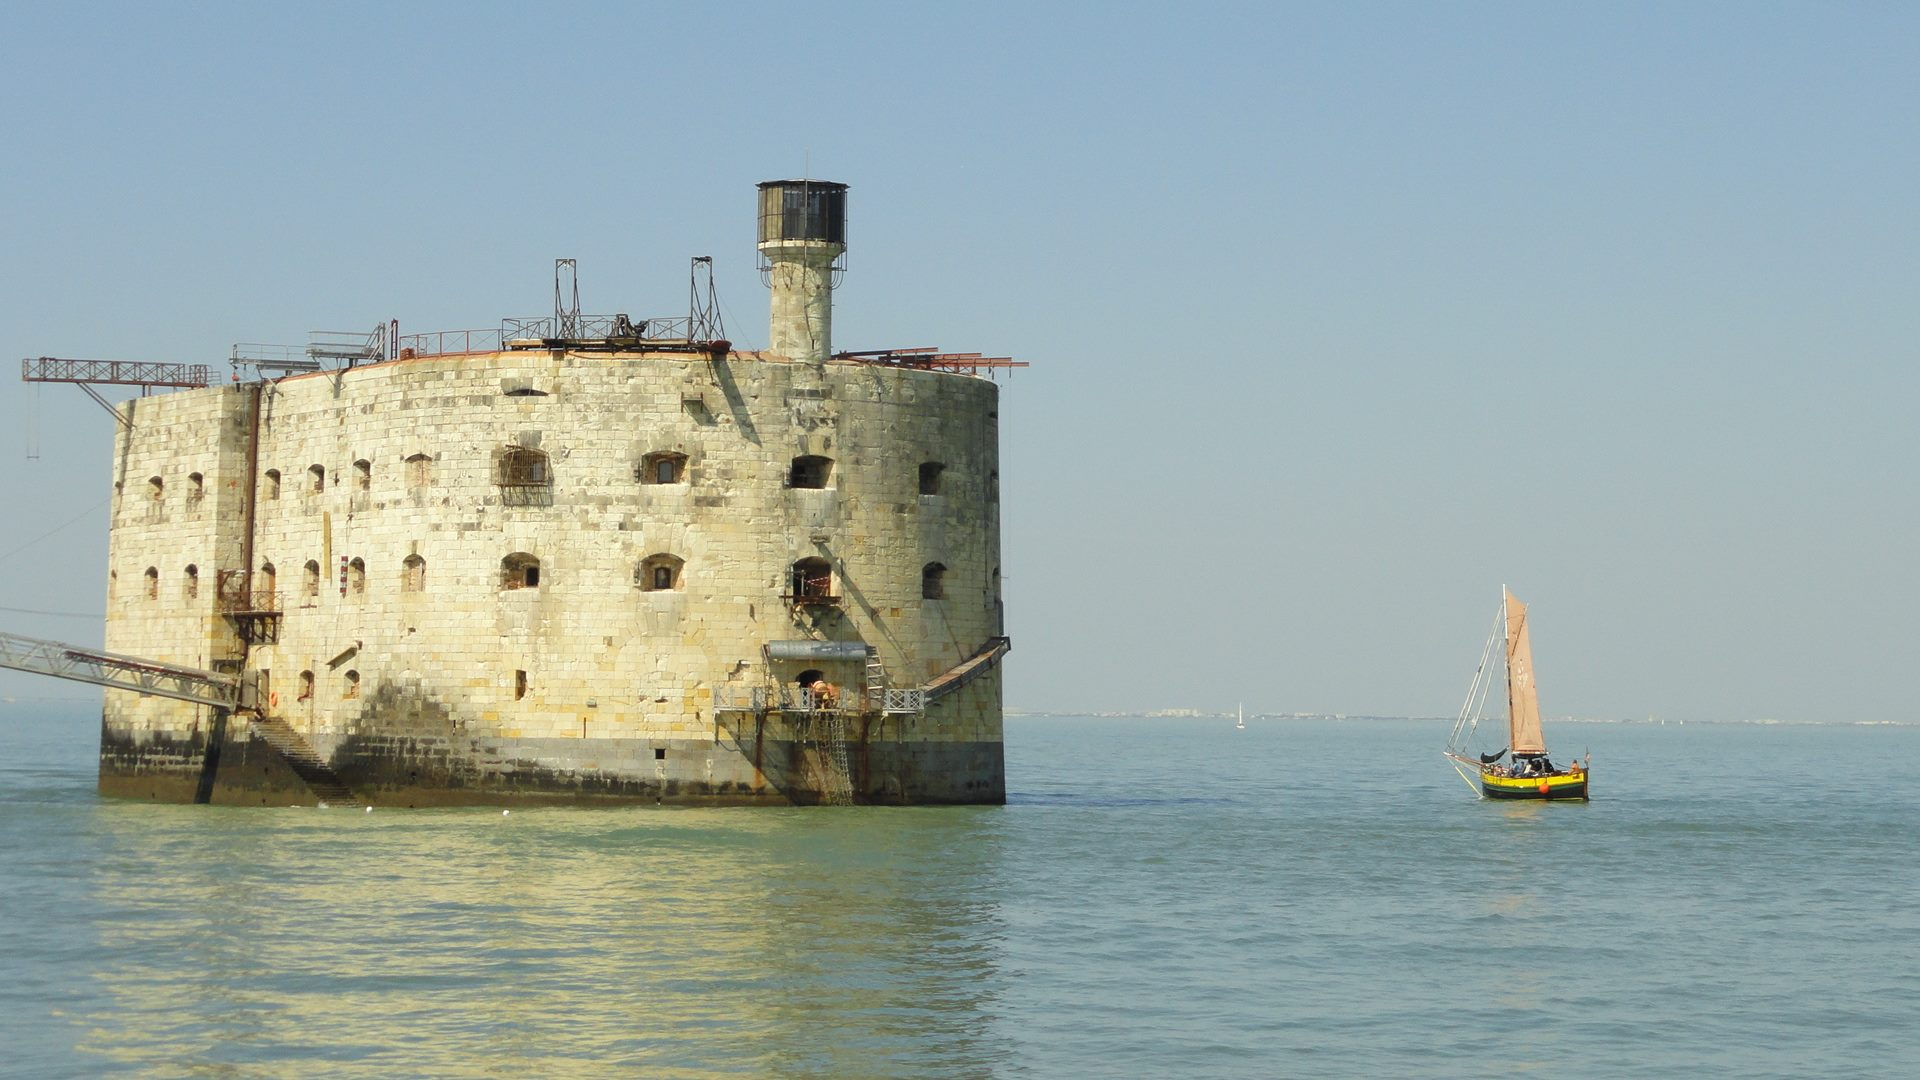 Photos divers de Fort Boyard 2019 (internautes + hors production) - Page 6 57538010